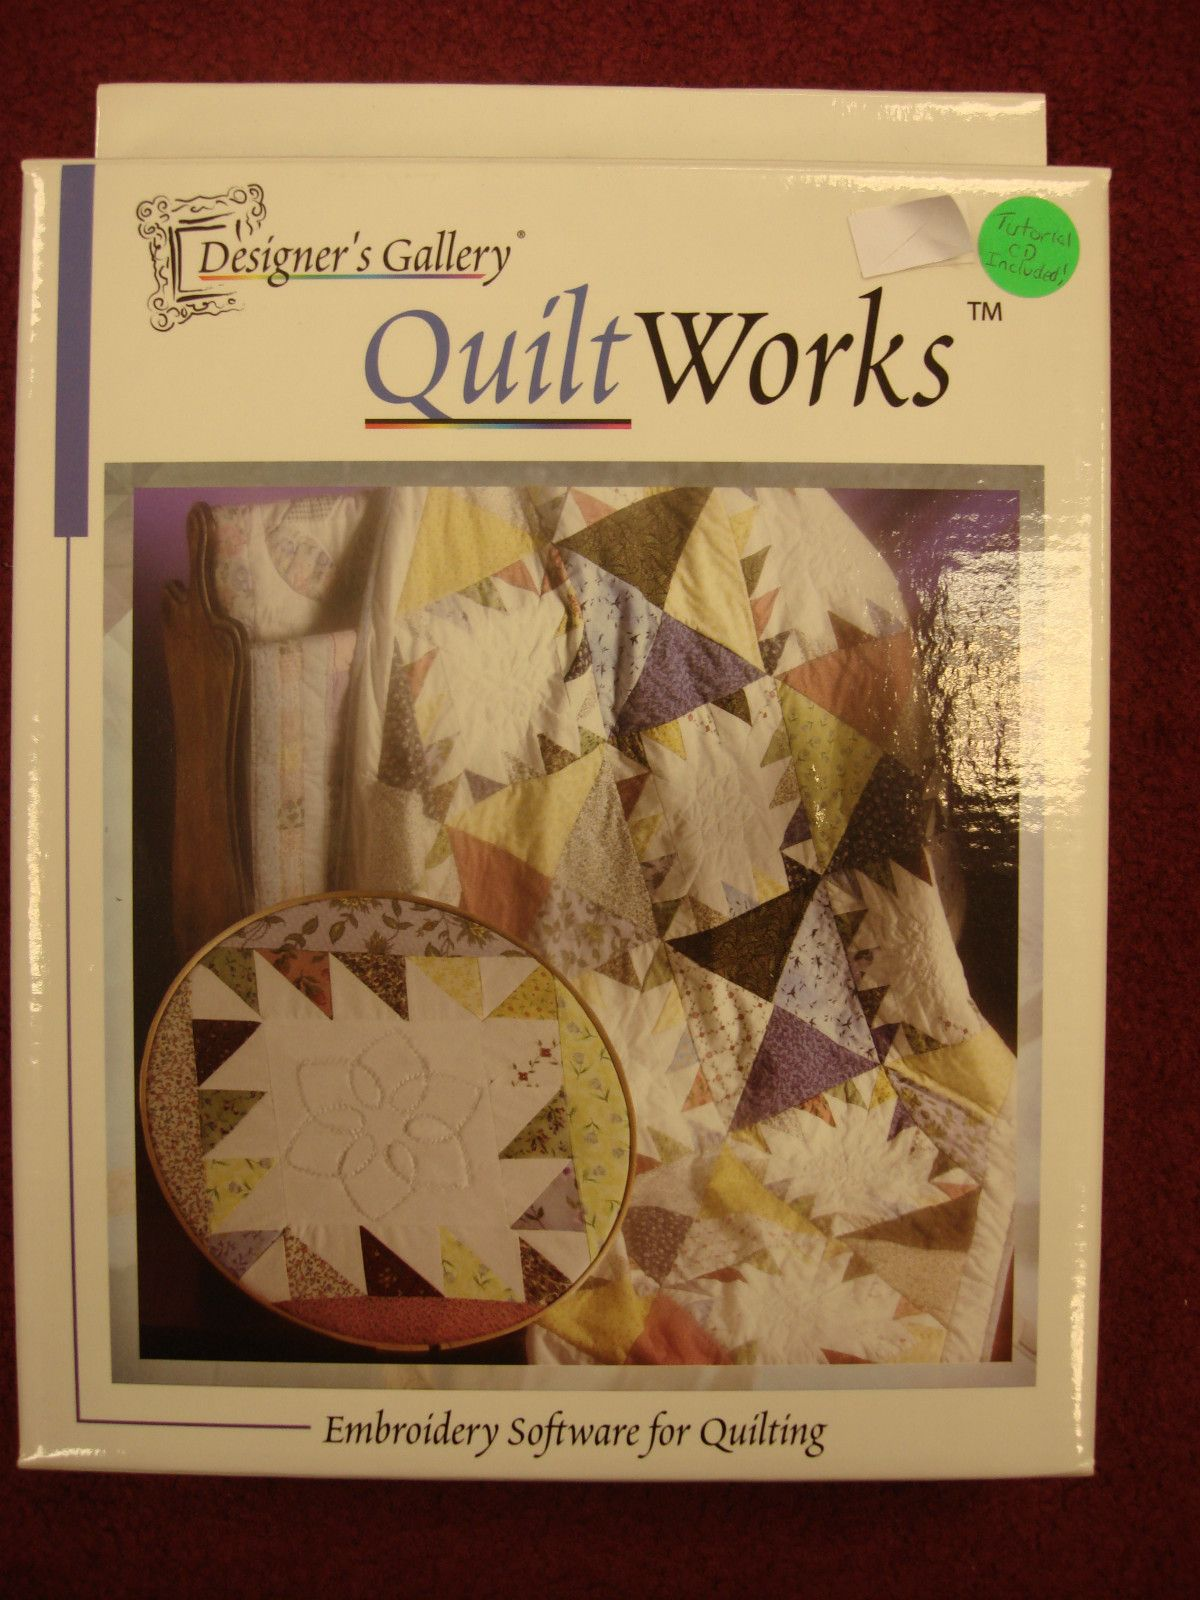 New Designer S Gallery Quilt Works Embroidery Digitizing Quilting Software Quilting Software Embroidery Software Quilts